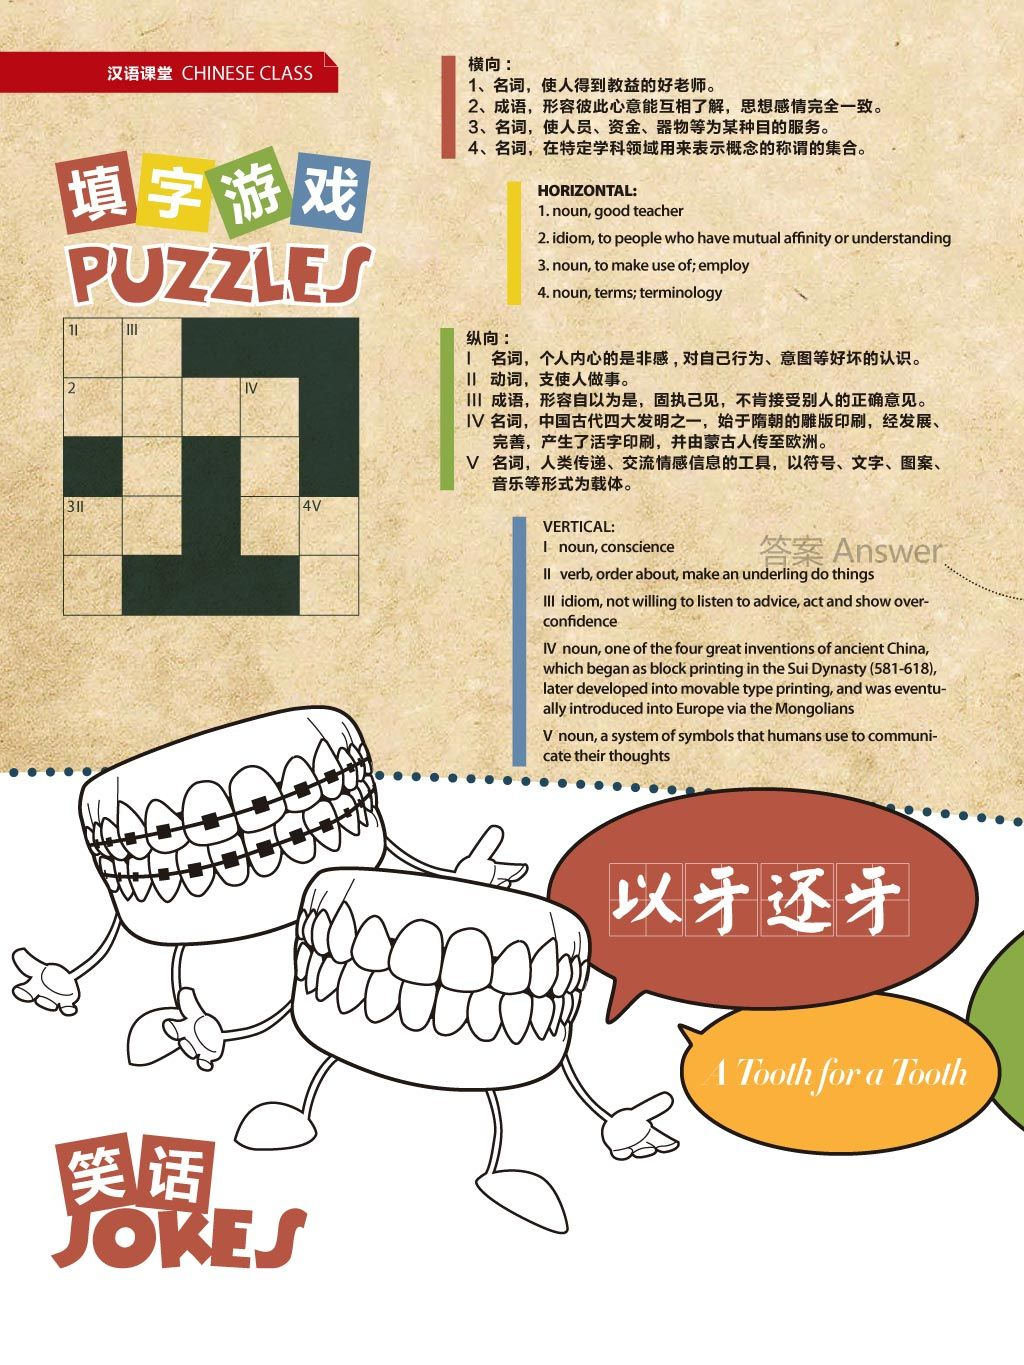 Chinese Class 29 Puzzles Jokes Buzzwords